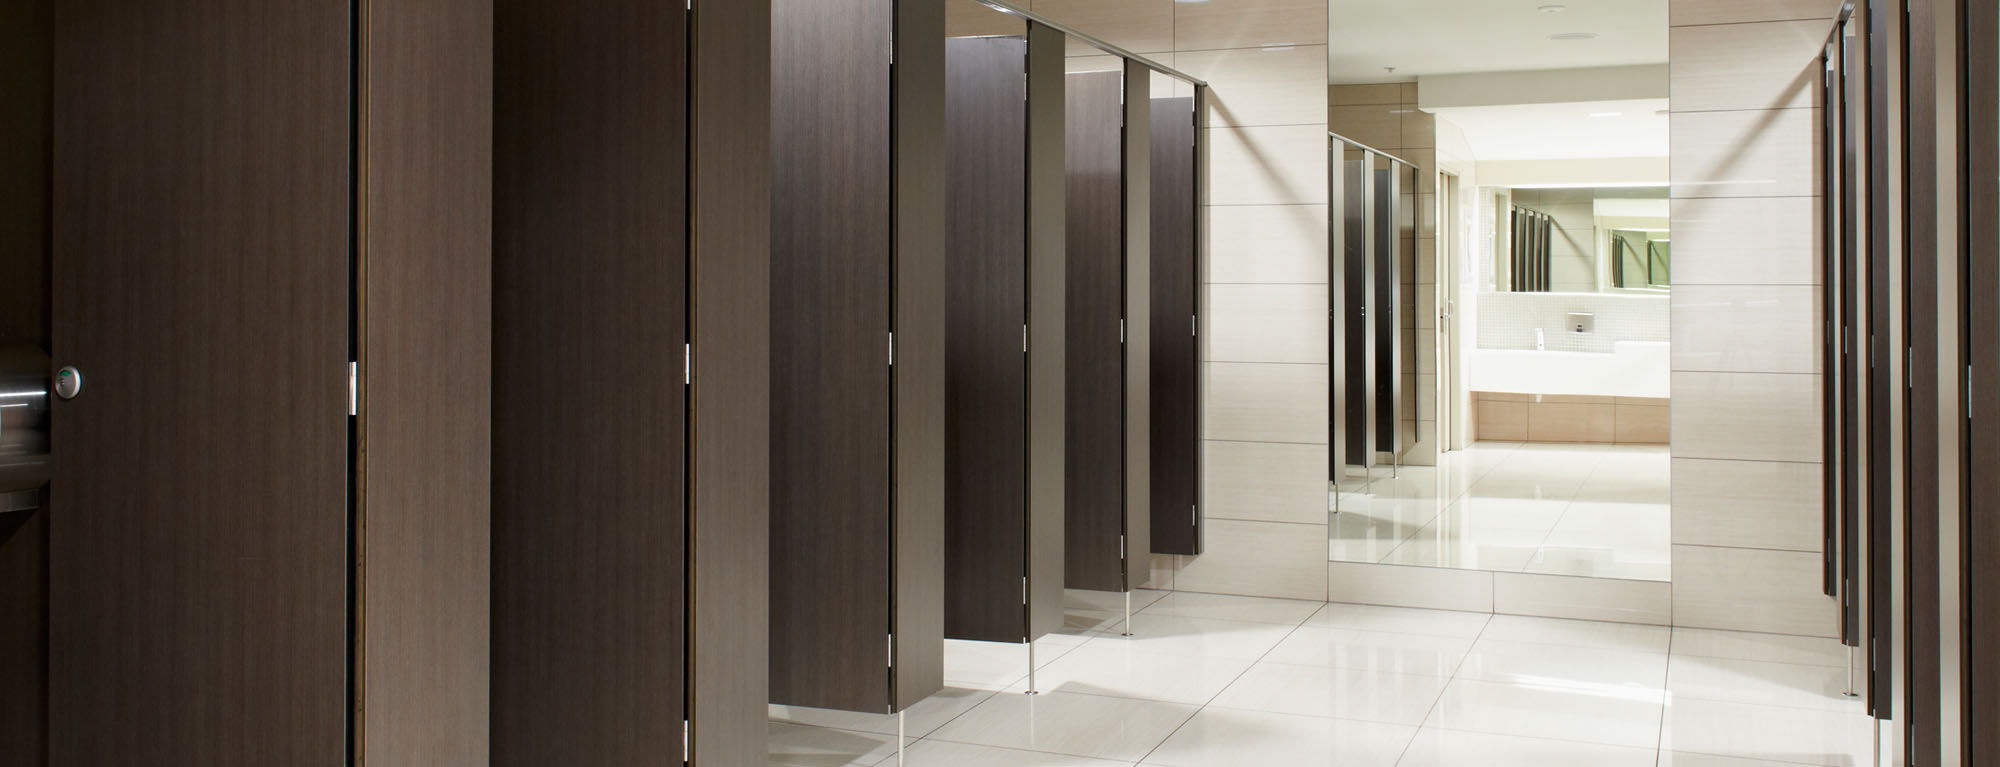 Amusing 80 commercial bathroom partition walls model for Bathroom partition hardware near me